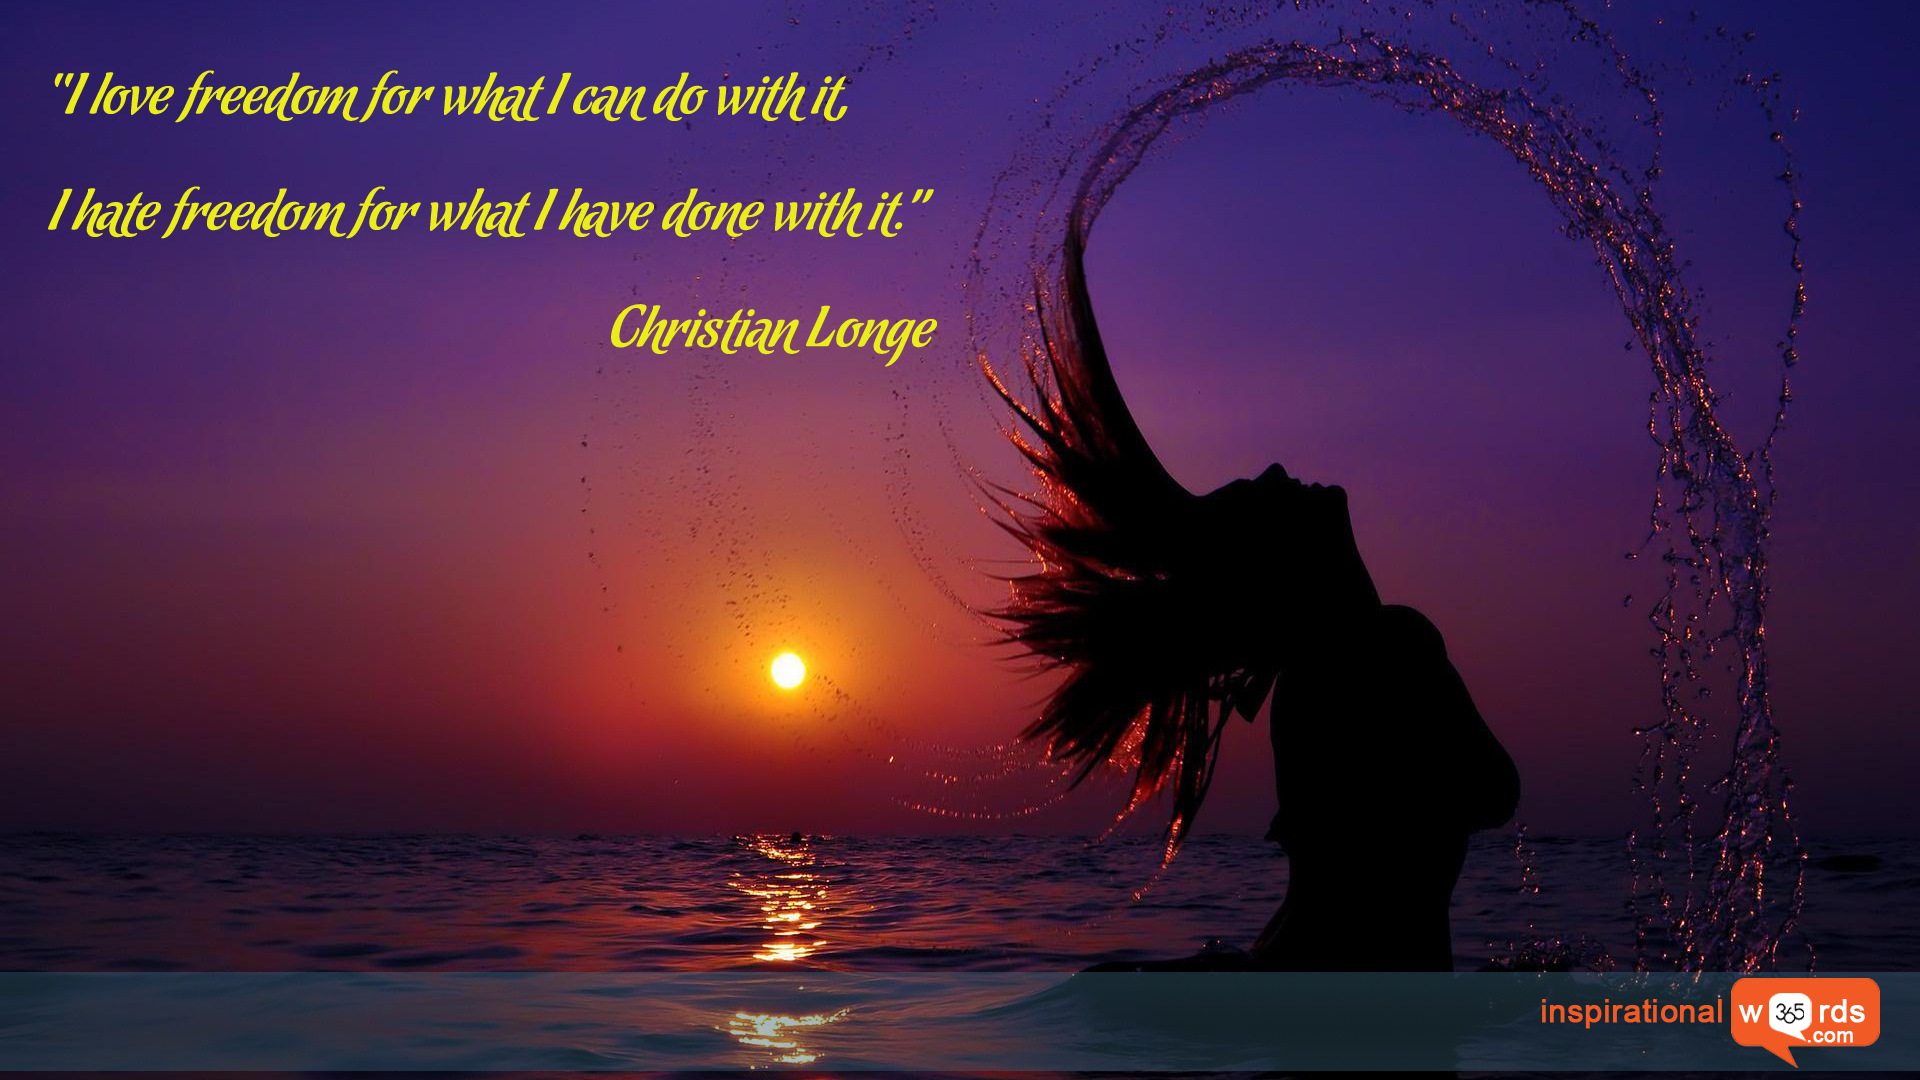 Inspirational Wallpaper Quote by Christian Longe